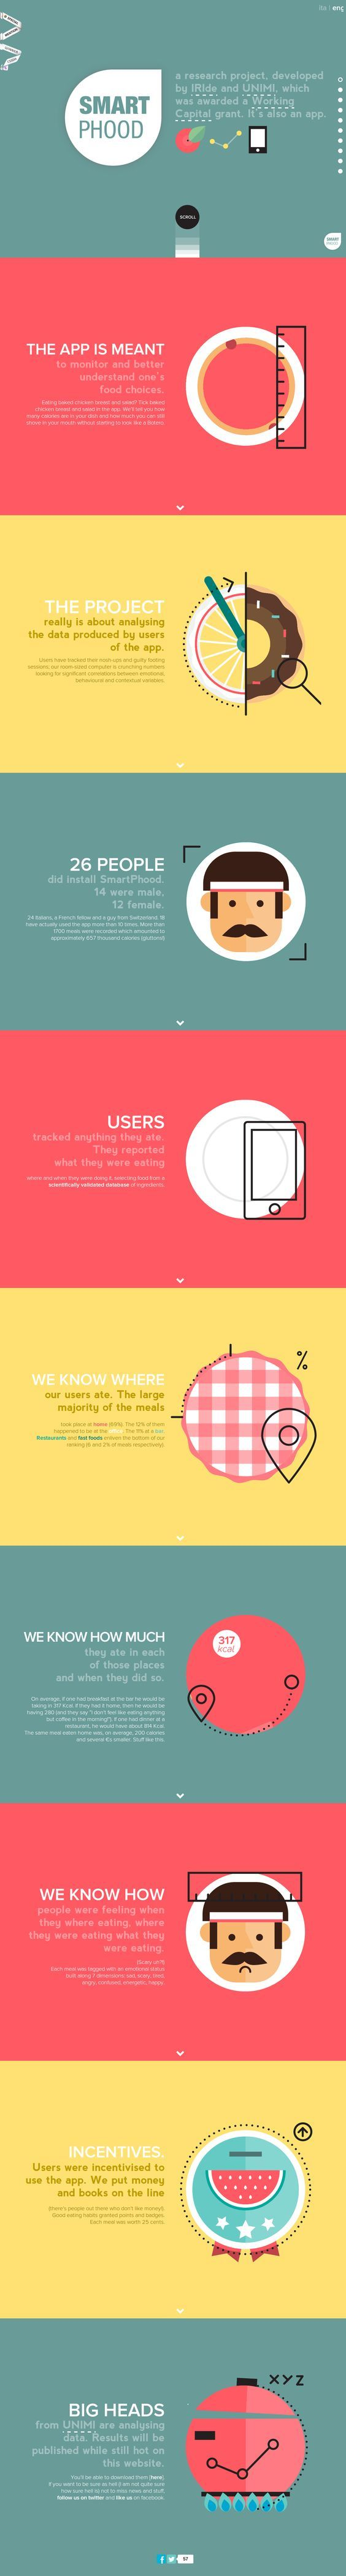 Smartphood - Colorful Website Design